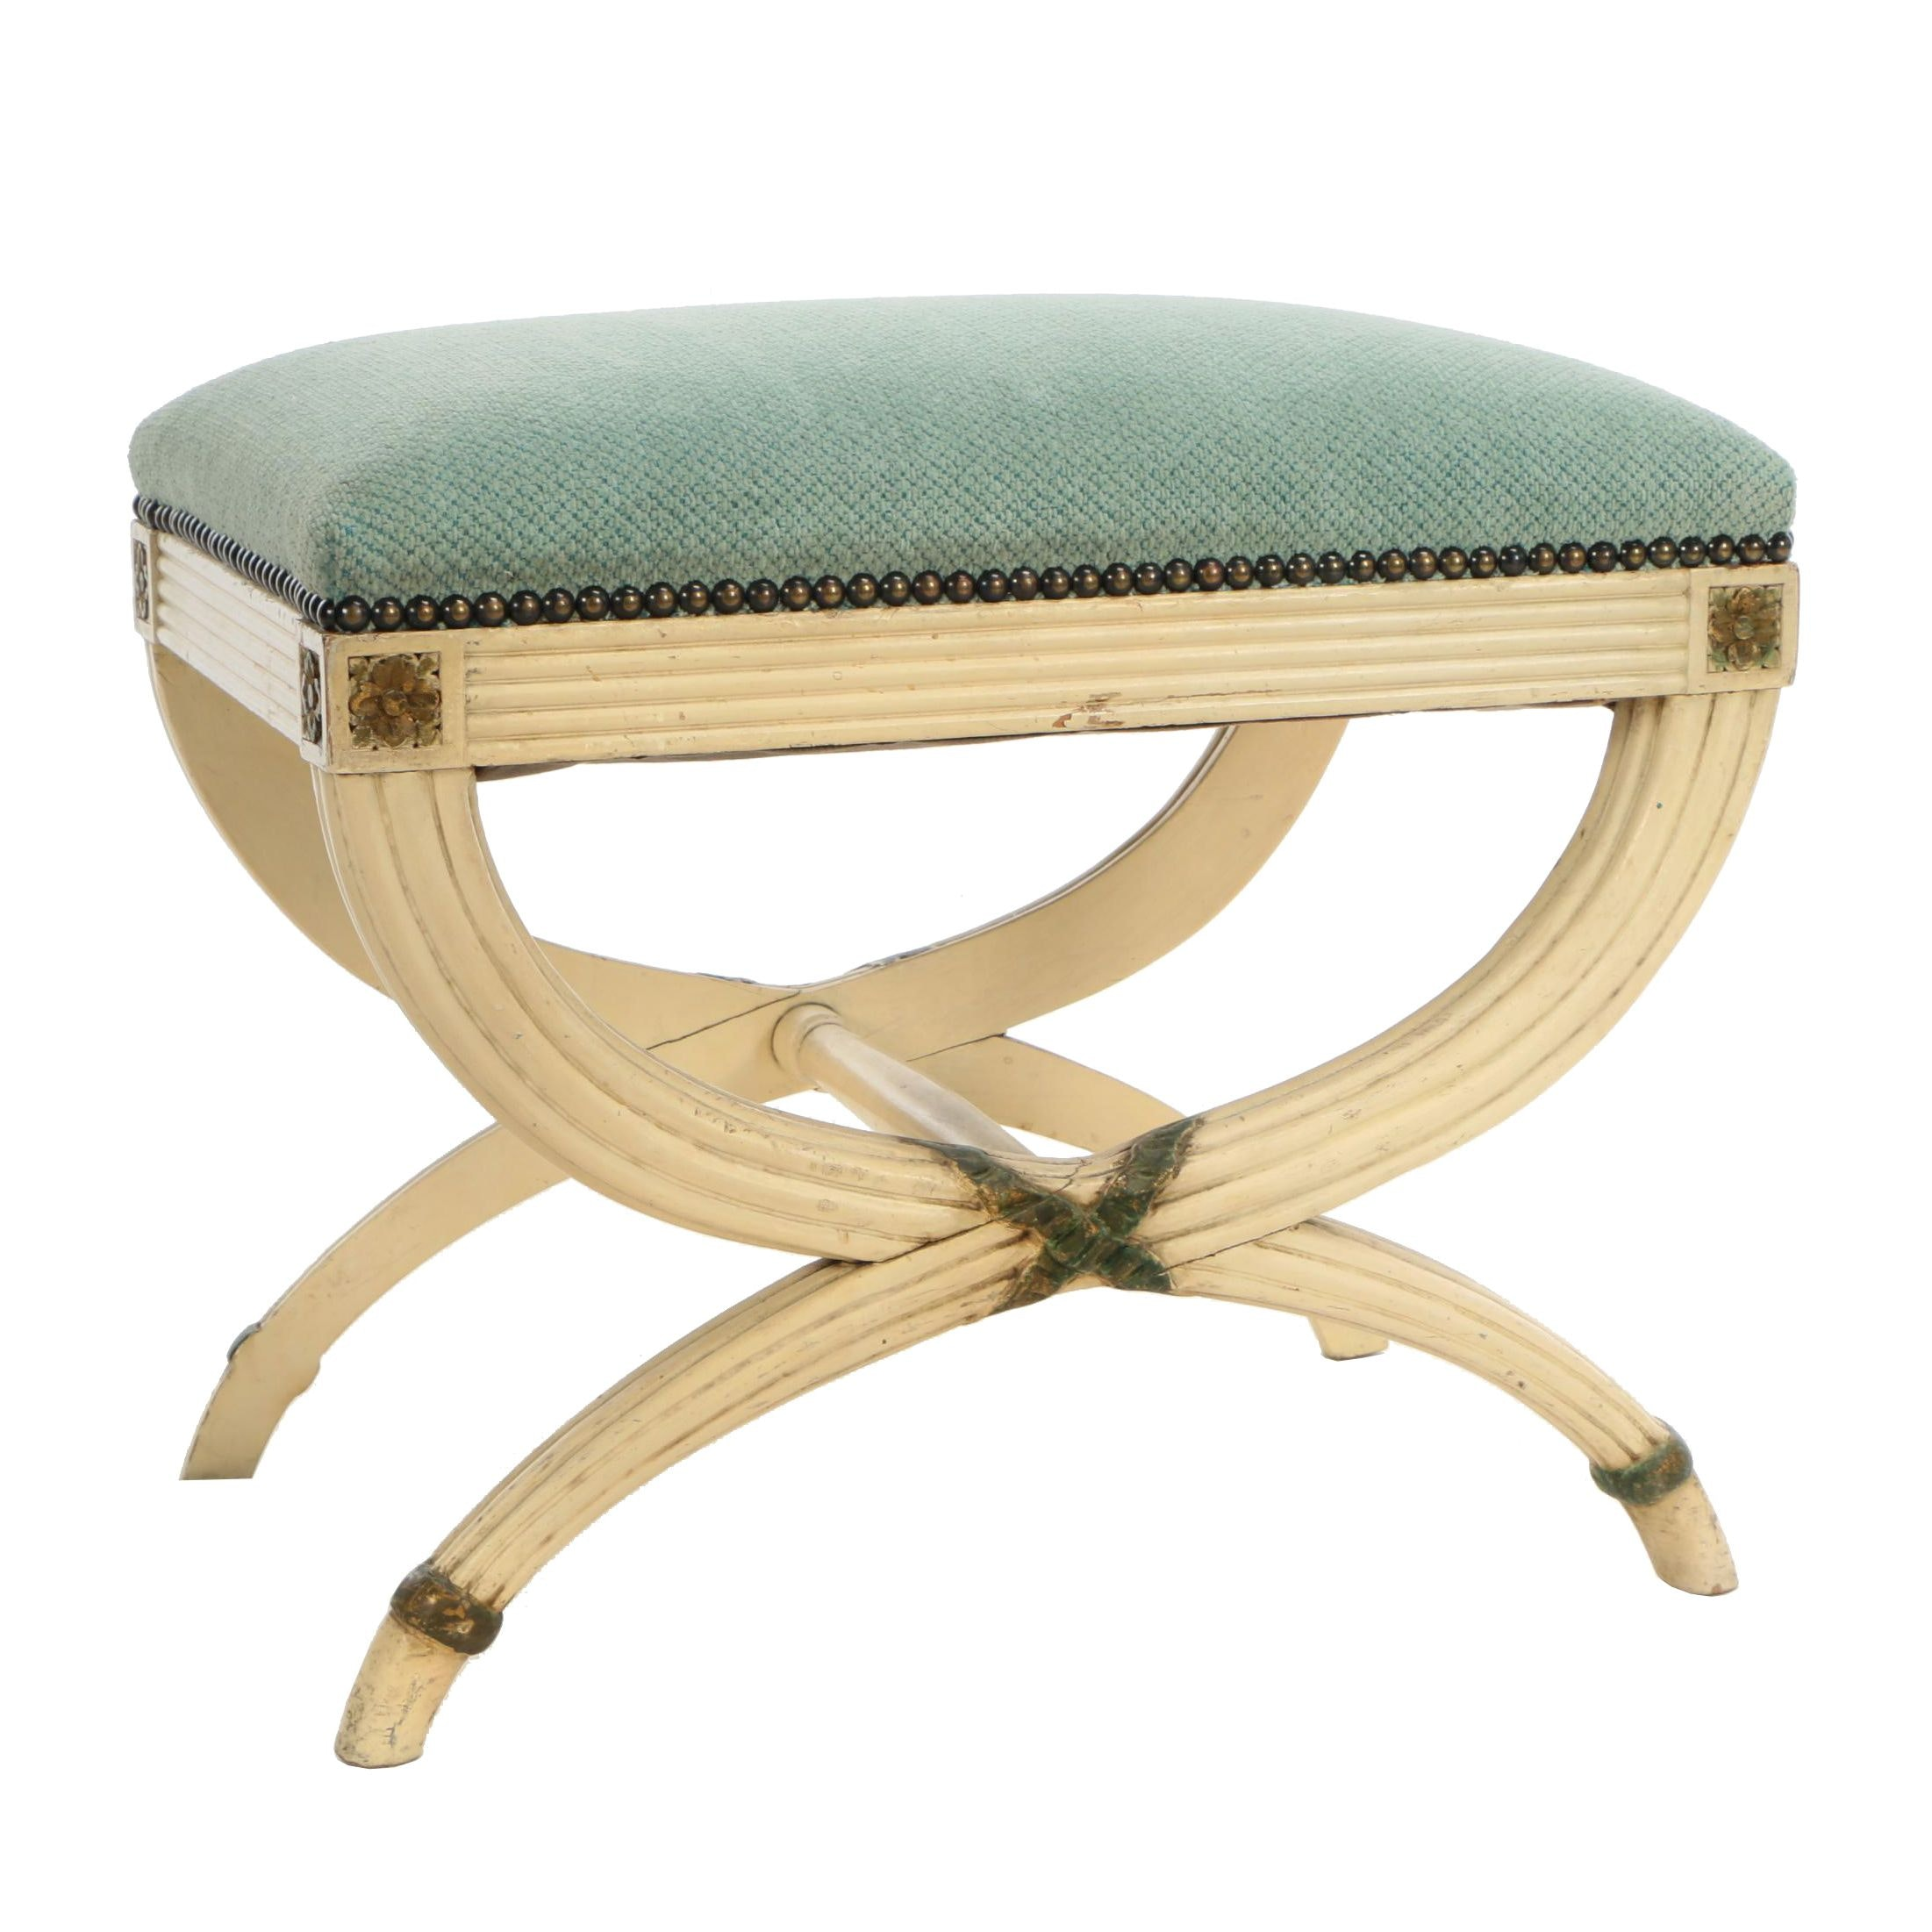 Contemporary Empire Style Painted Wood and Chenille Stool